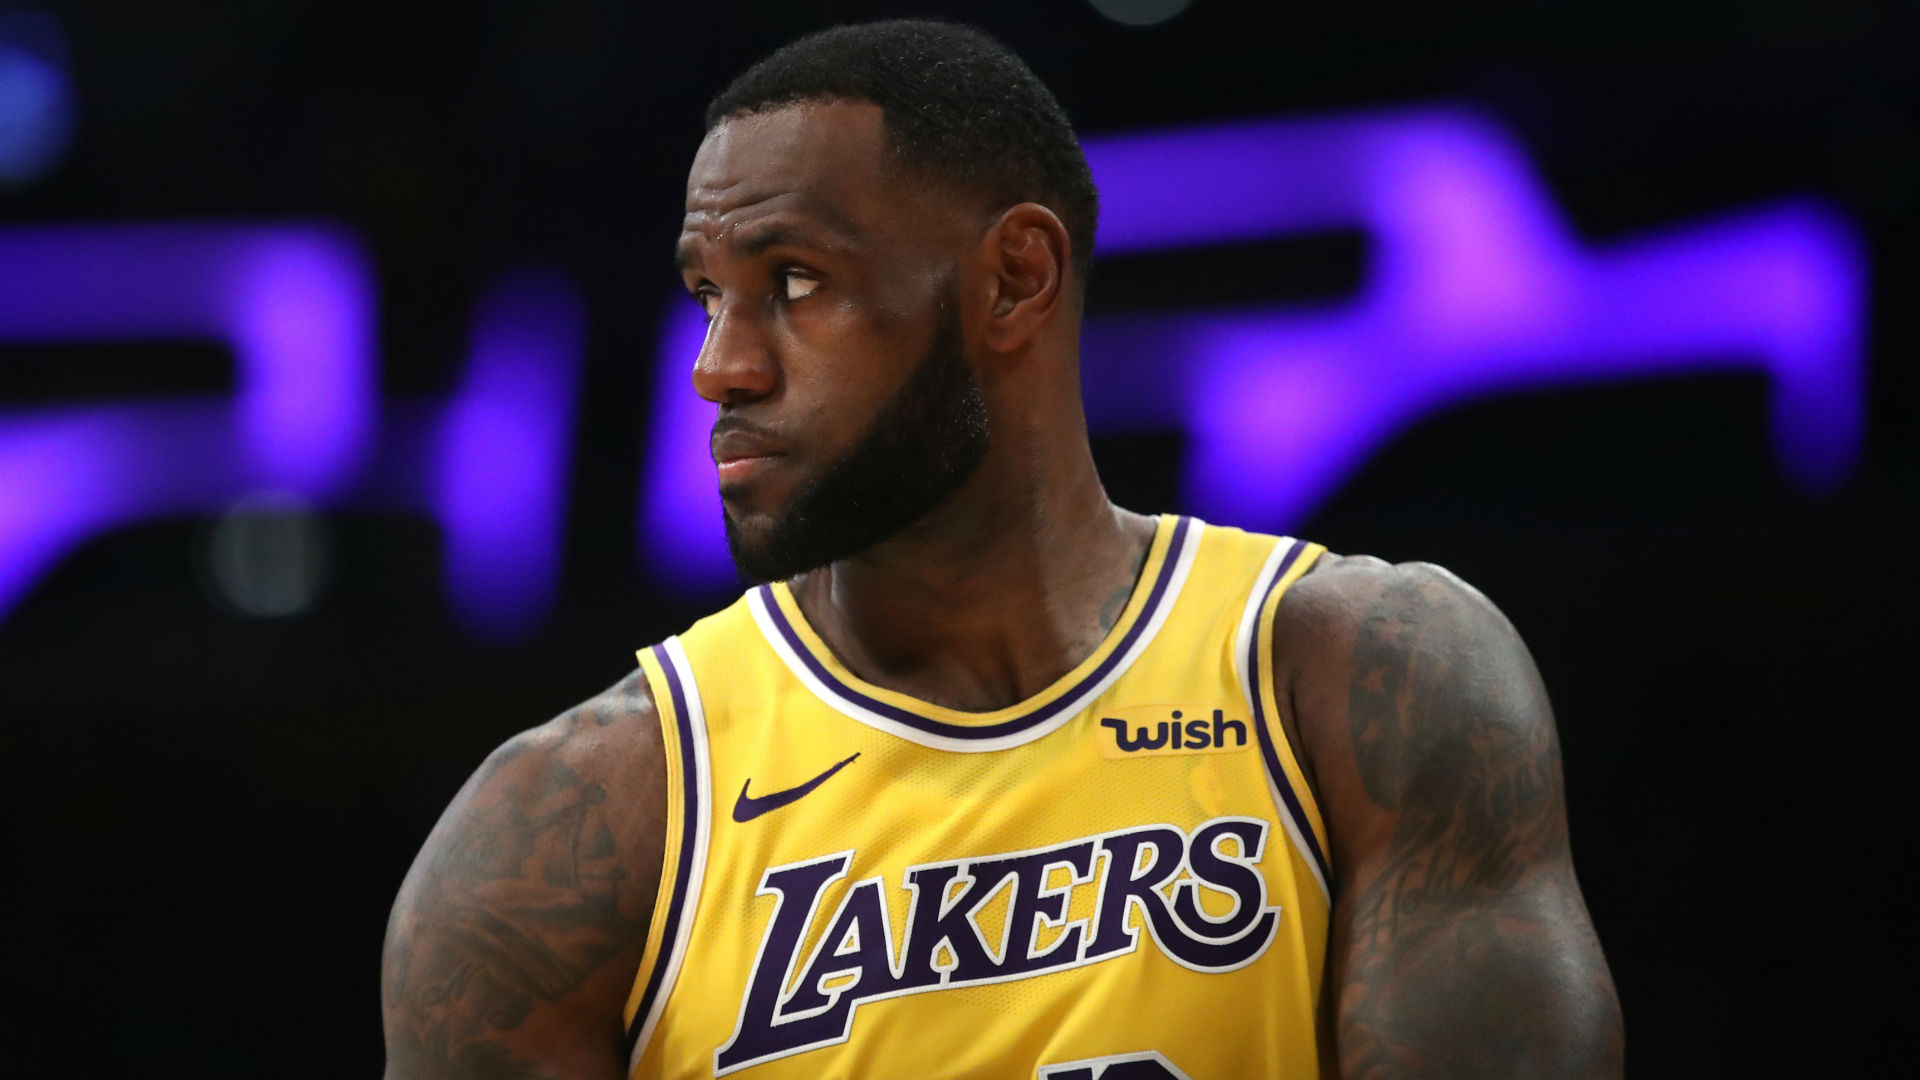 b996a2aa43f LeBron James is one of the most successful athletes in the world. If you  are a basketball fan